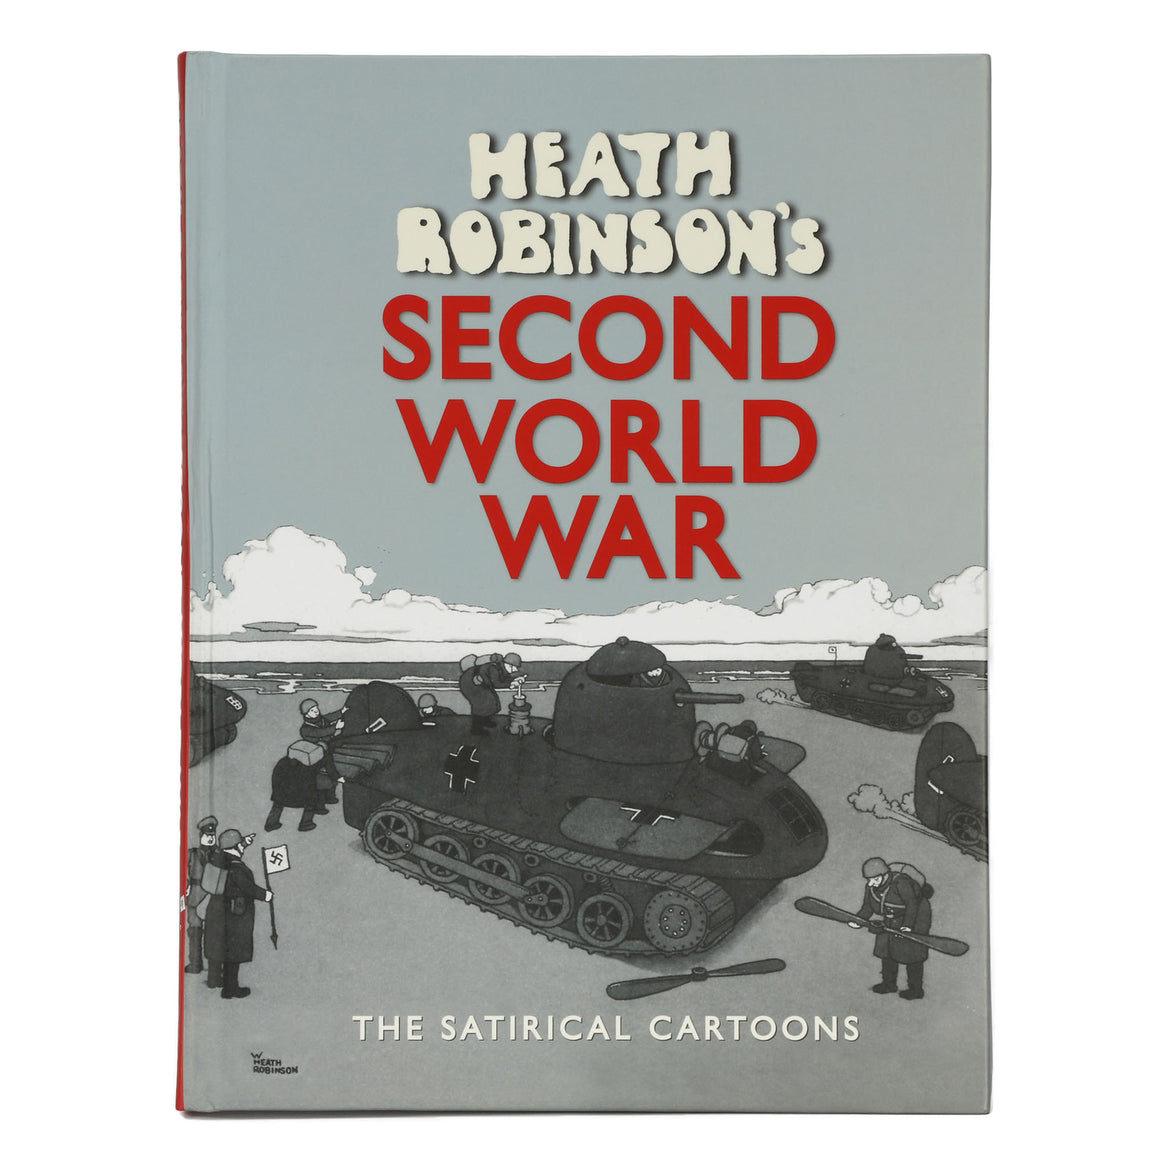 Heath Robinsons Second World War